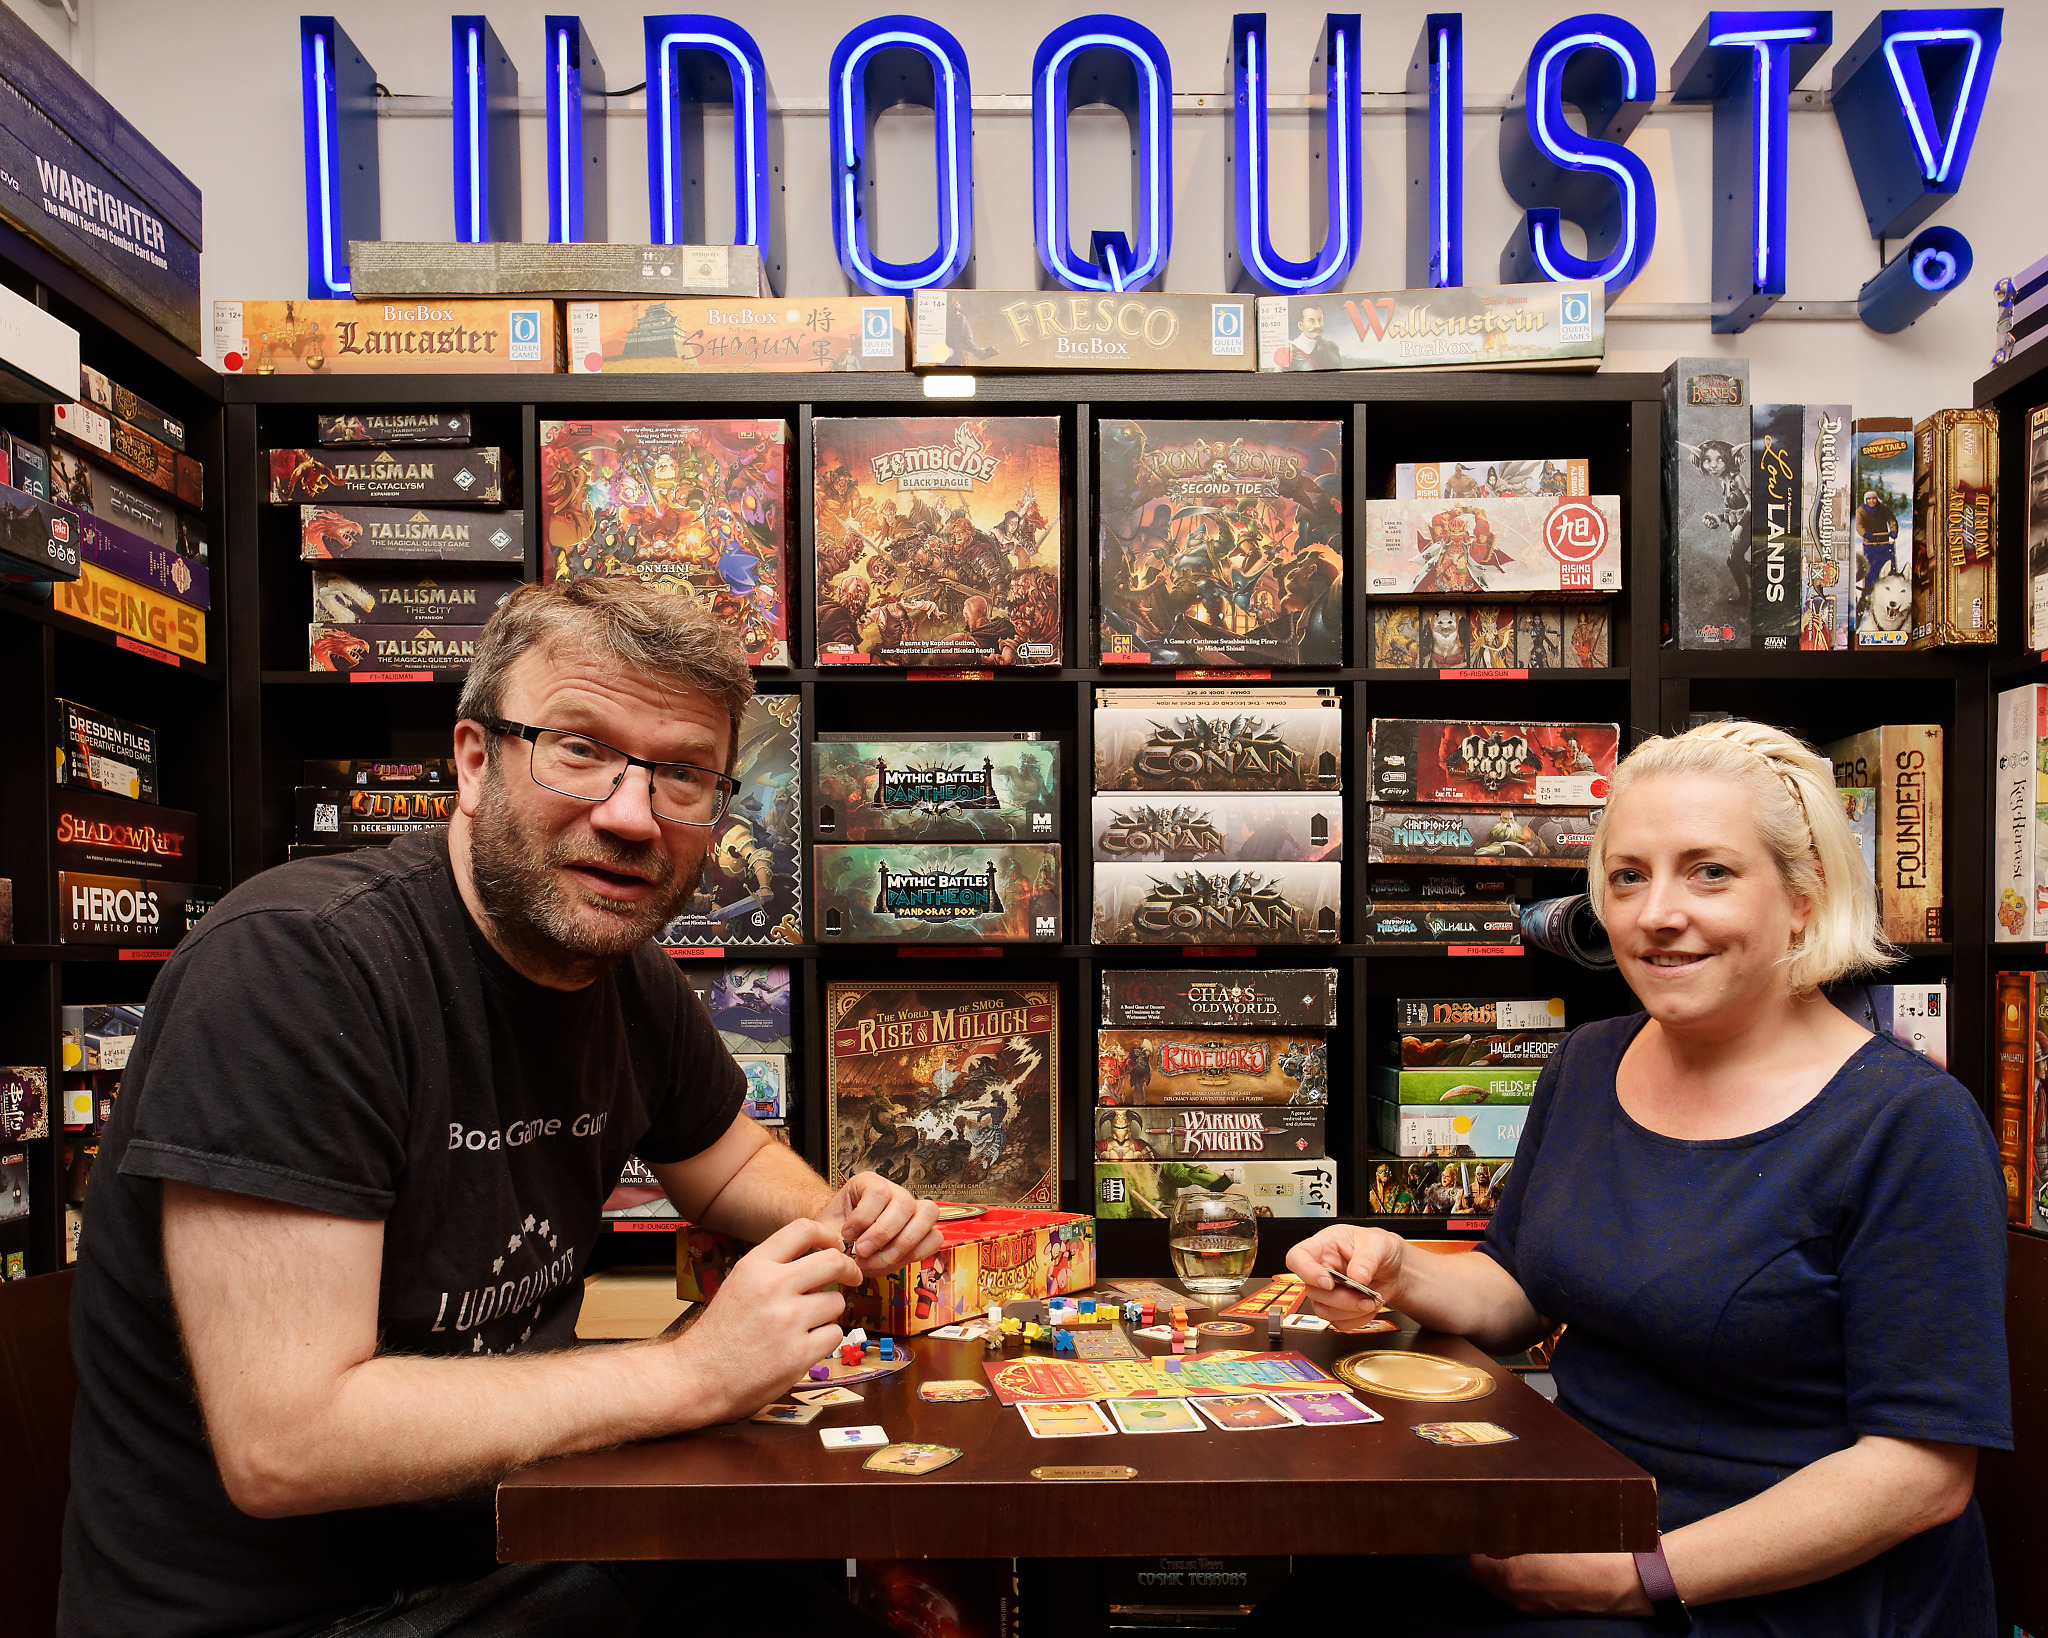 Nick & Carrie - The Ludoquist